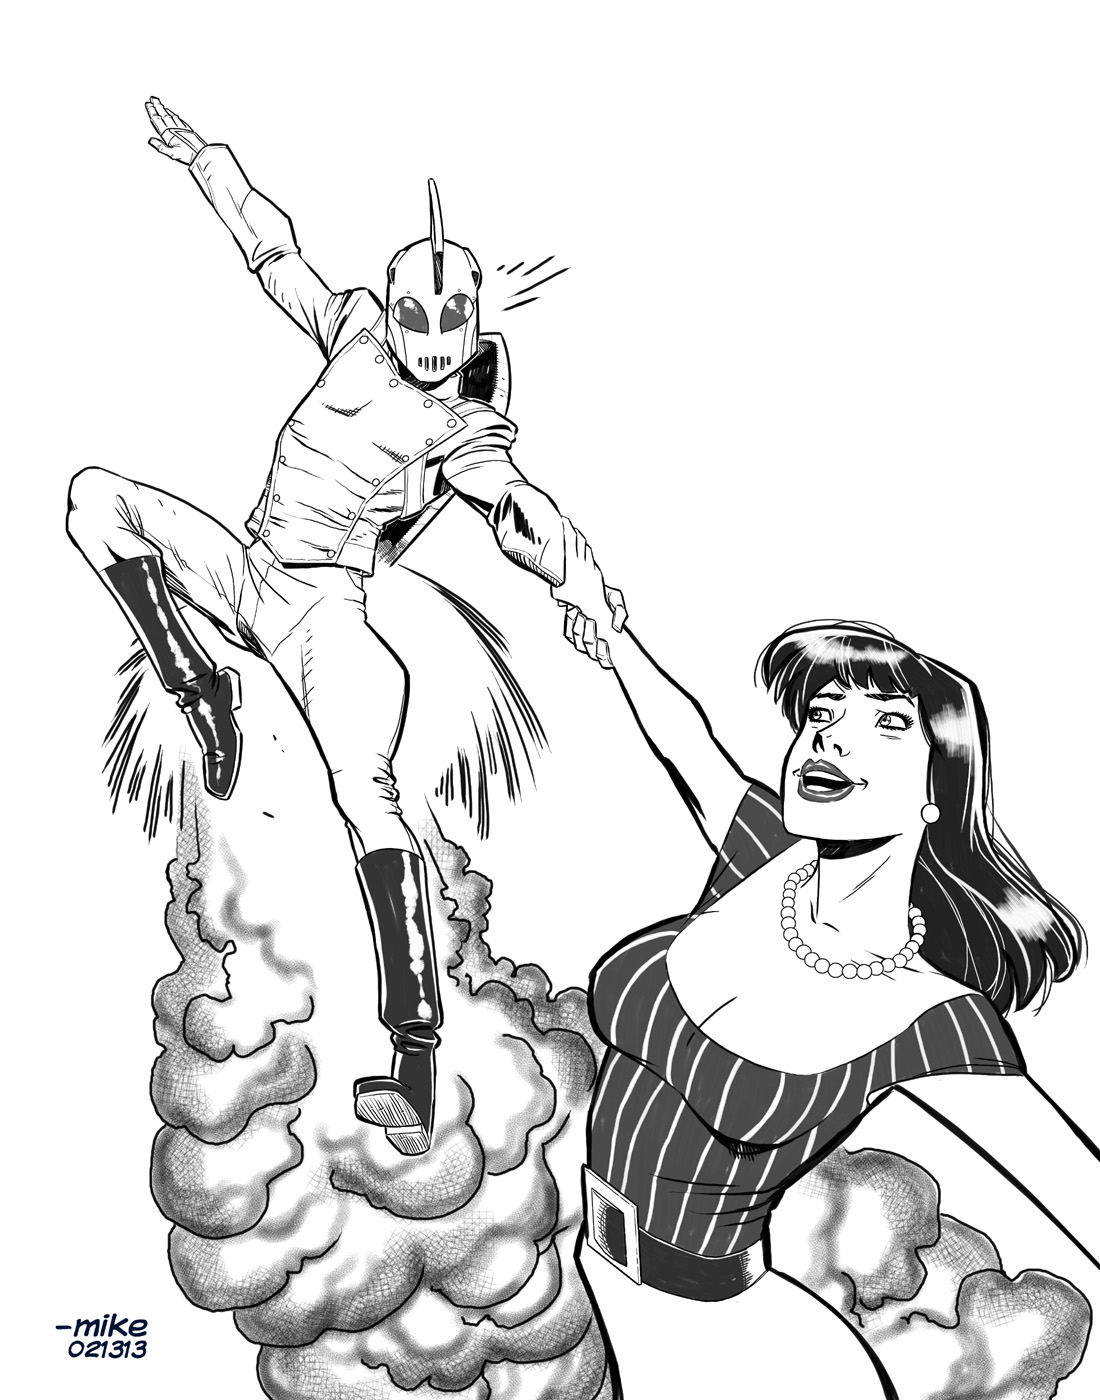 Rocketeer-BnW by MikeDimayuga